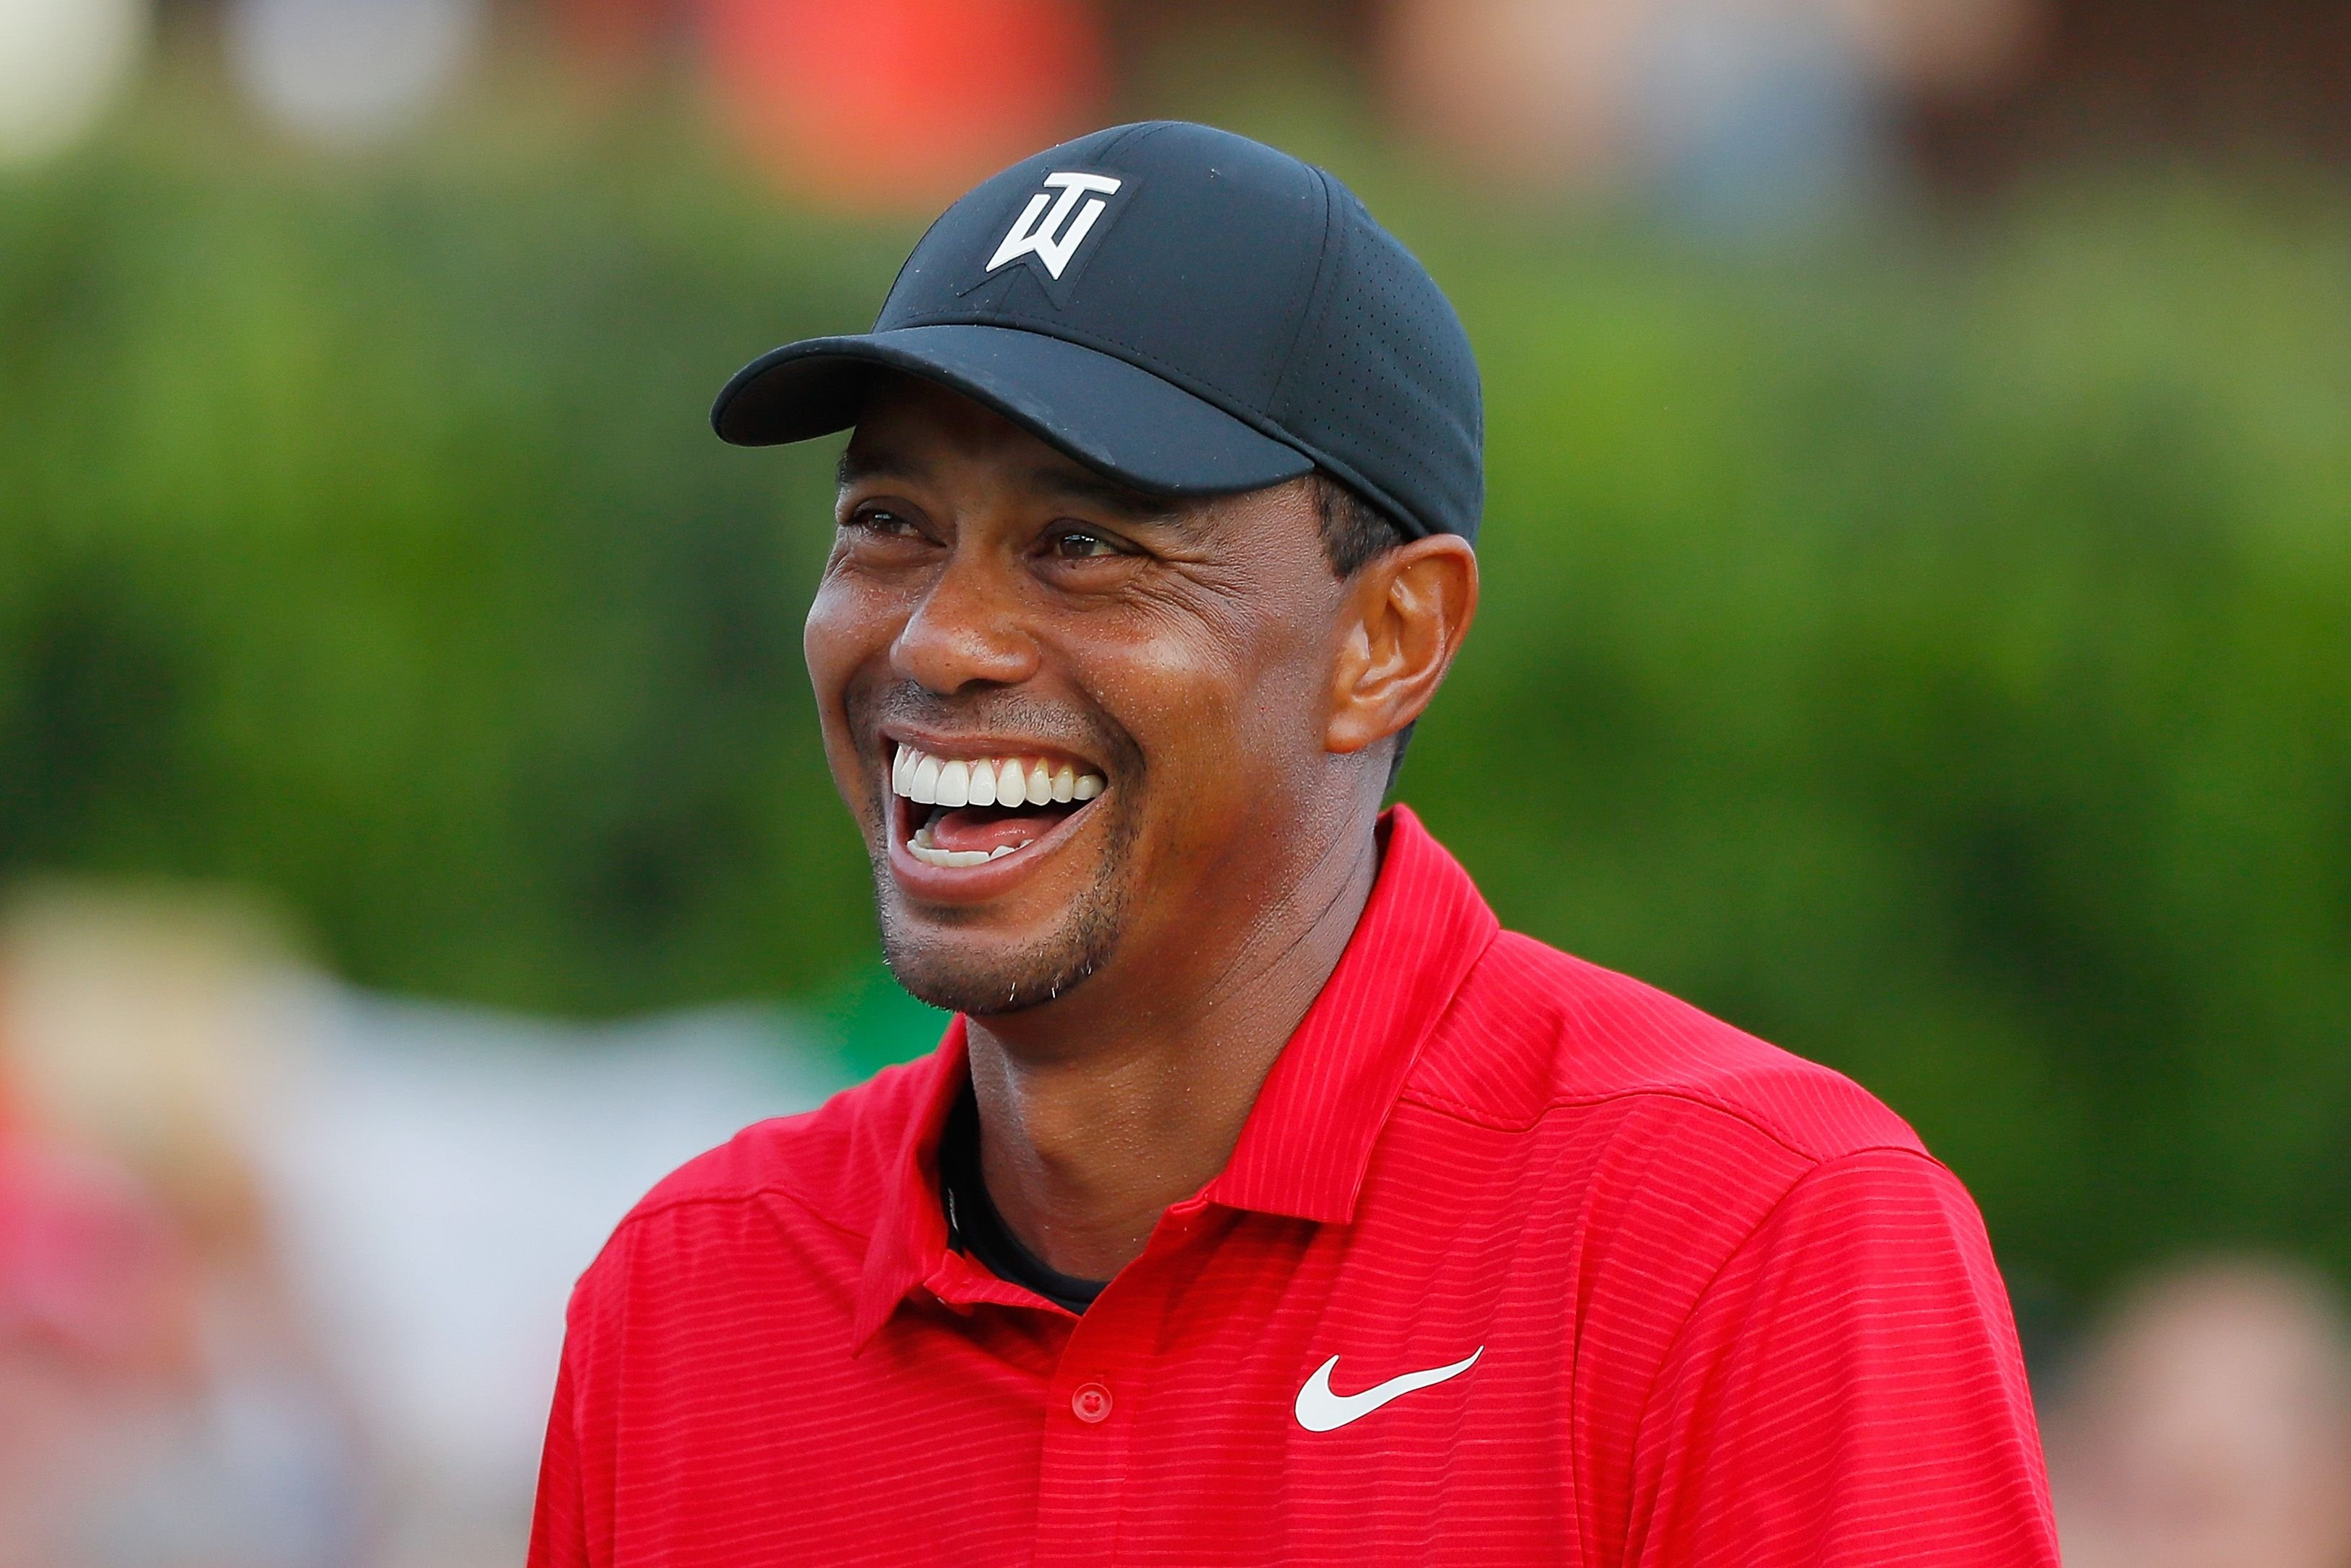 Tiger Woods during the trophy presentation ceremony after winning the TOUR Championship at East Lake Golf Club on September 23, 2018 in Atlanta, Georgia.   Source: Getty Images